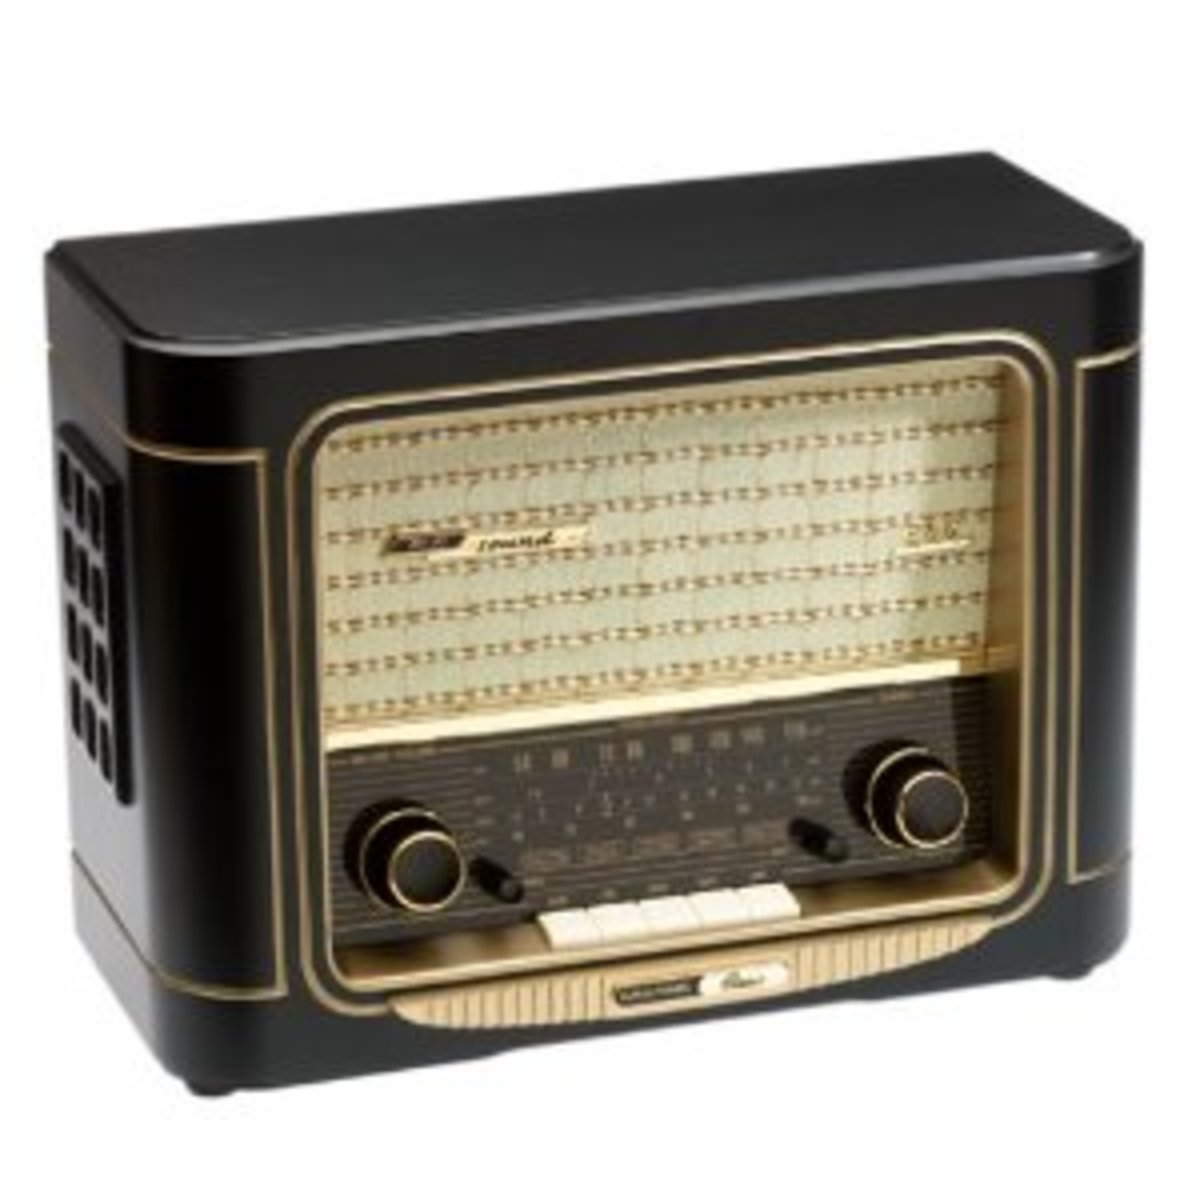 Radio Days: Vintage Replica Radios